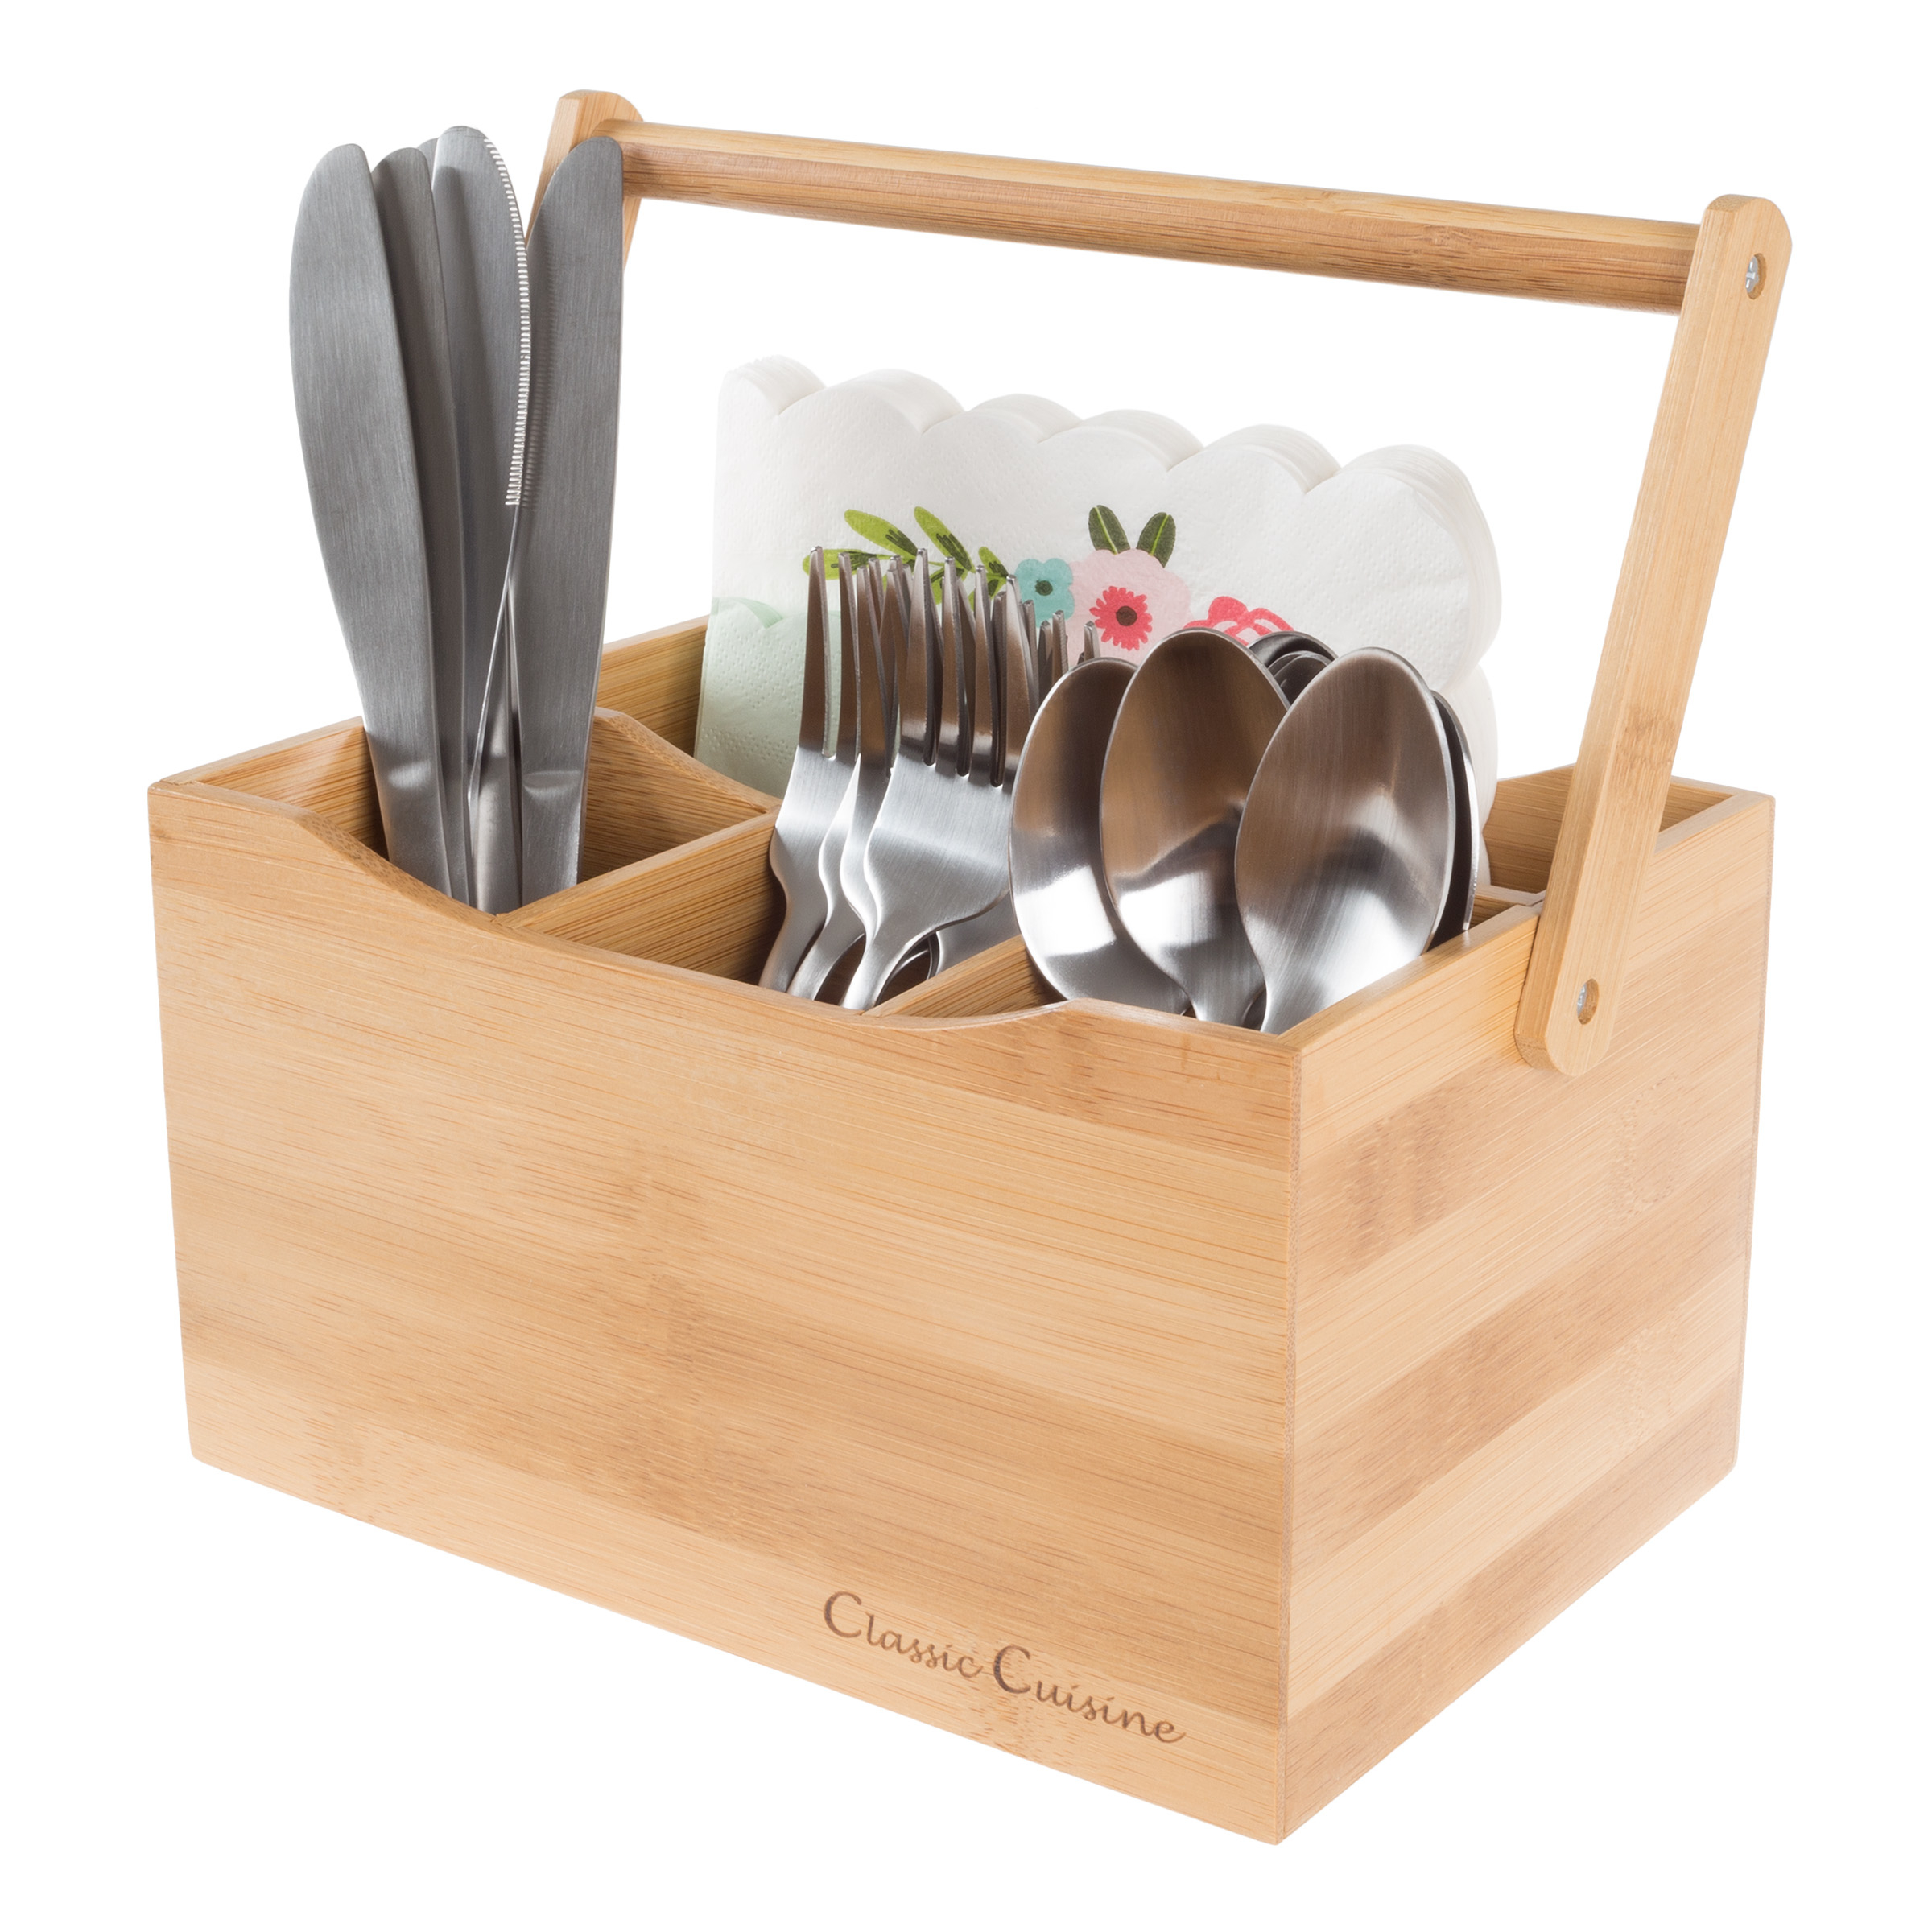 Bamboo Flatware Utensil Holder Silverware Organizer Picnic Table Party Wooden Box